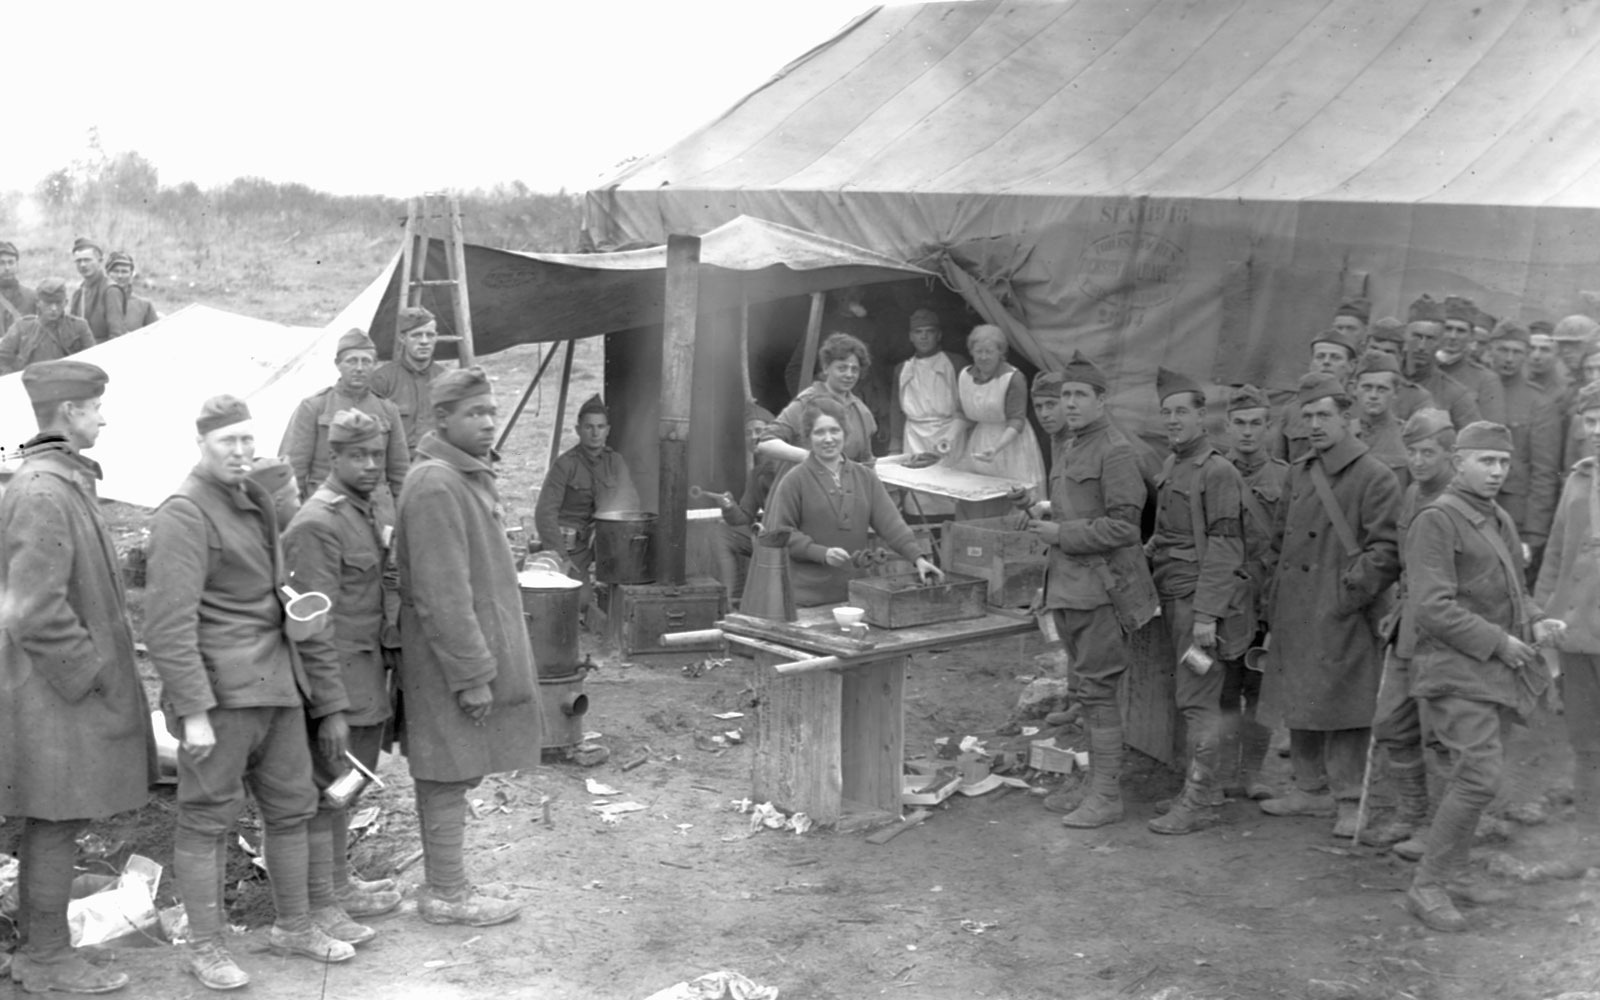 Salvation Army volunteers give fresh donuts to soldiers in France in 1918 T